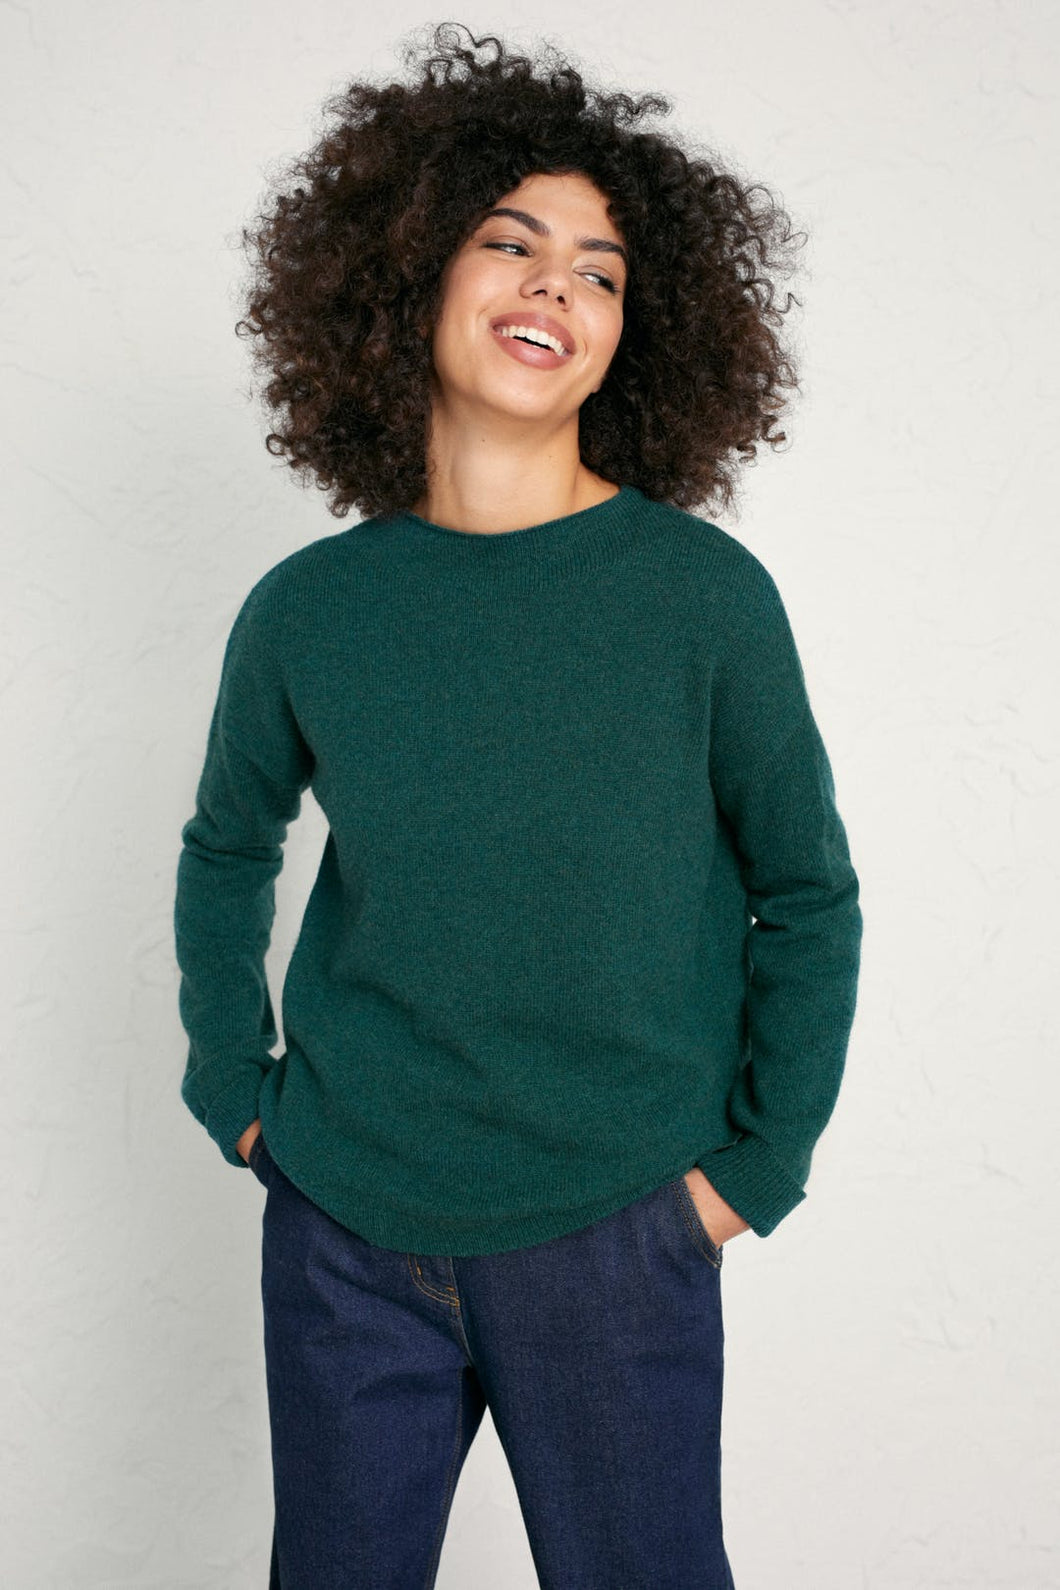 seasalt Shillings grown on neck loose fit jumper in Thicket